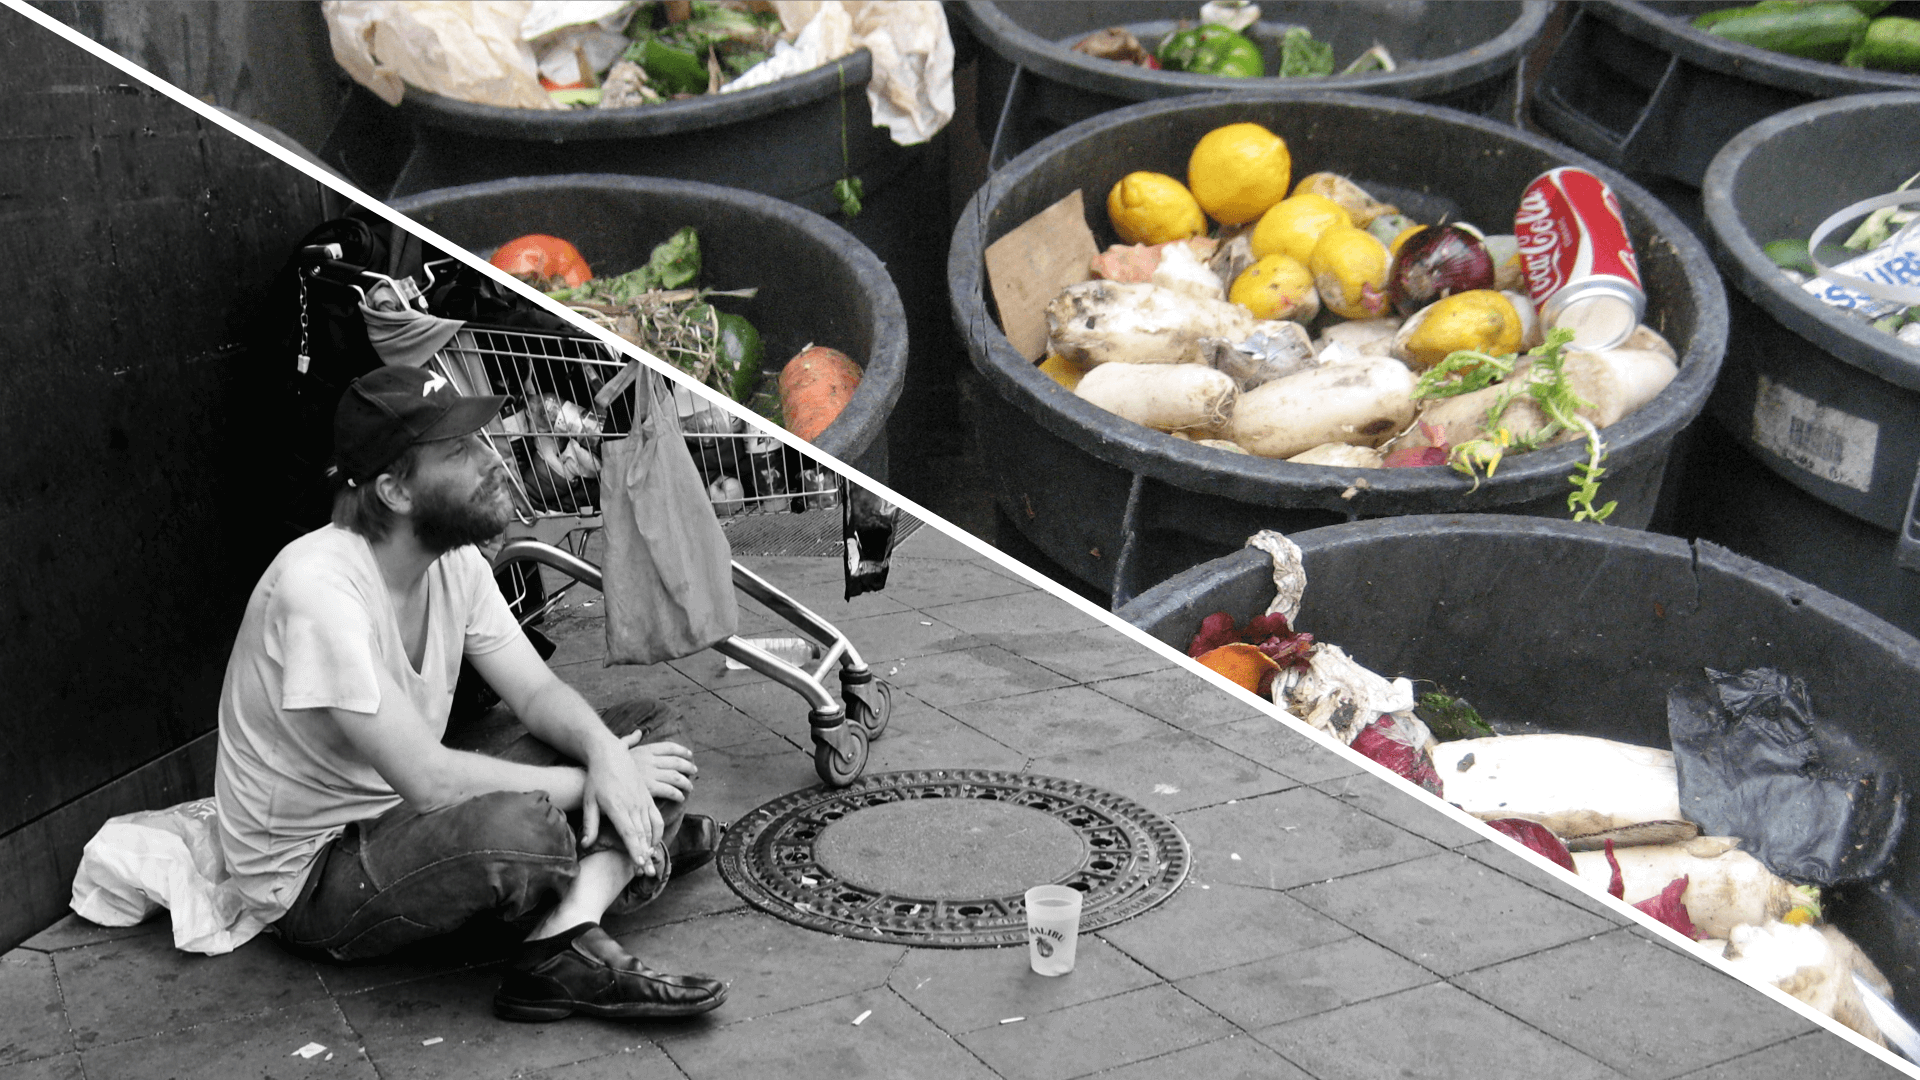 food waste and food poverty